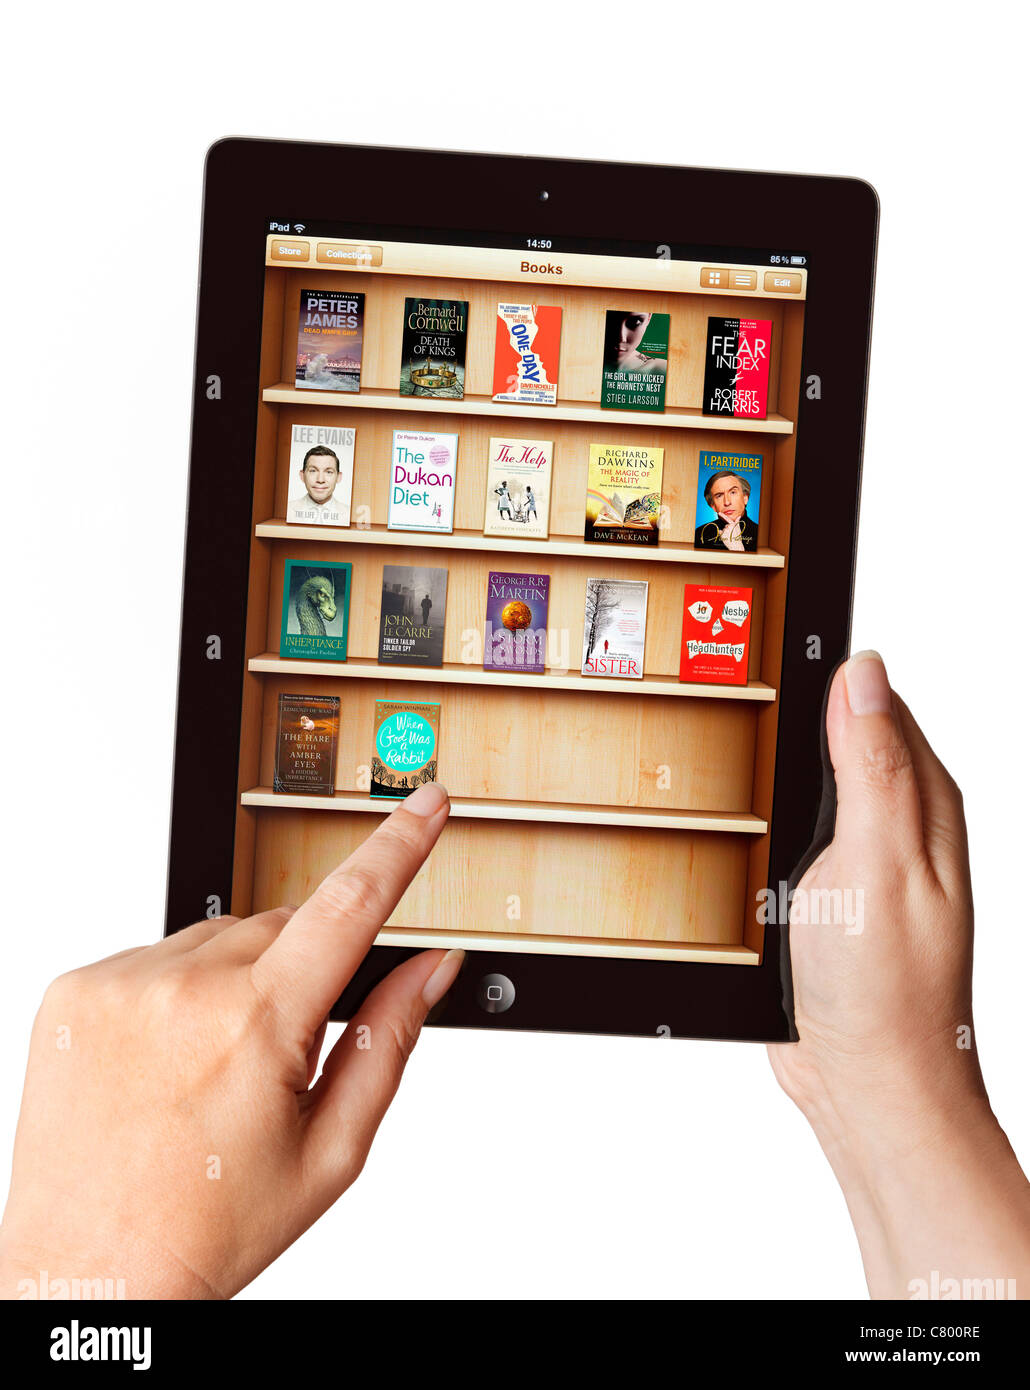 Hands holding iPad and selecting an ebook from the book cover in library app - Stock Image